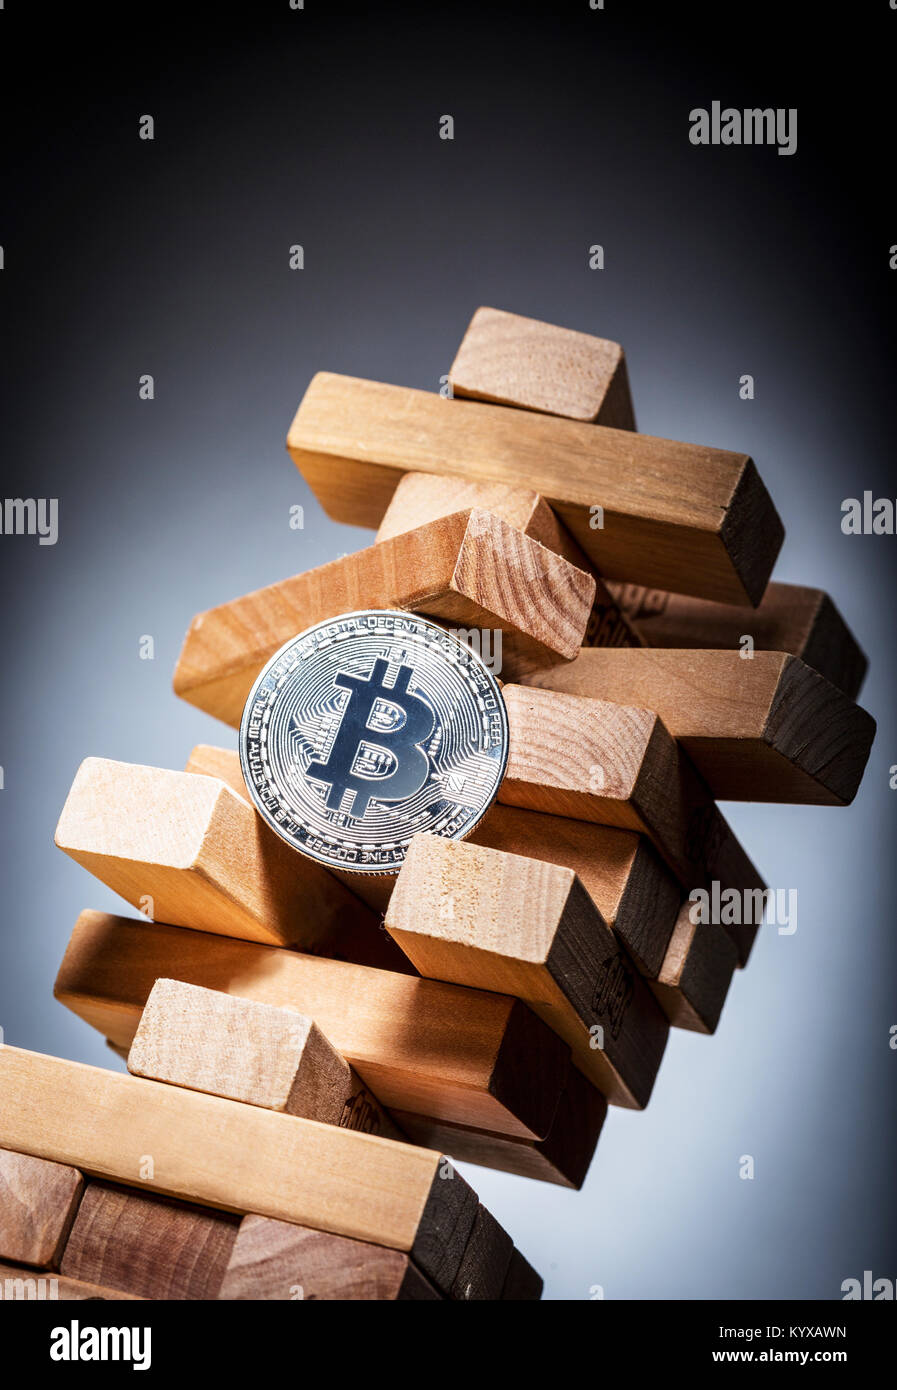 Bitcoin investment risk concept image - Stock Image